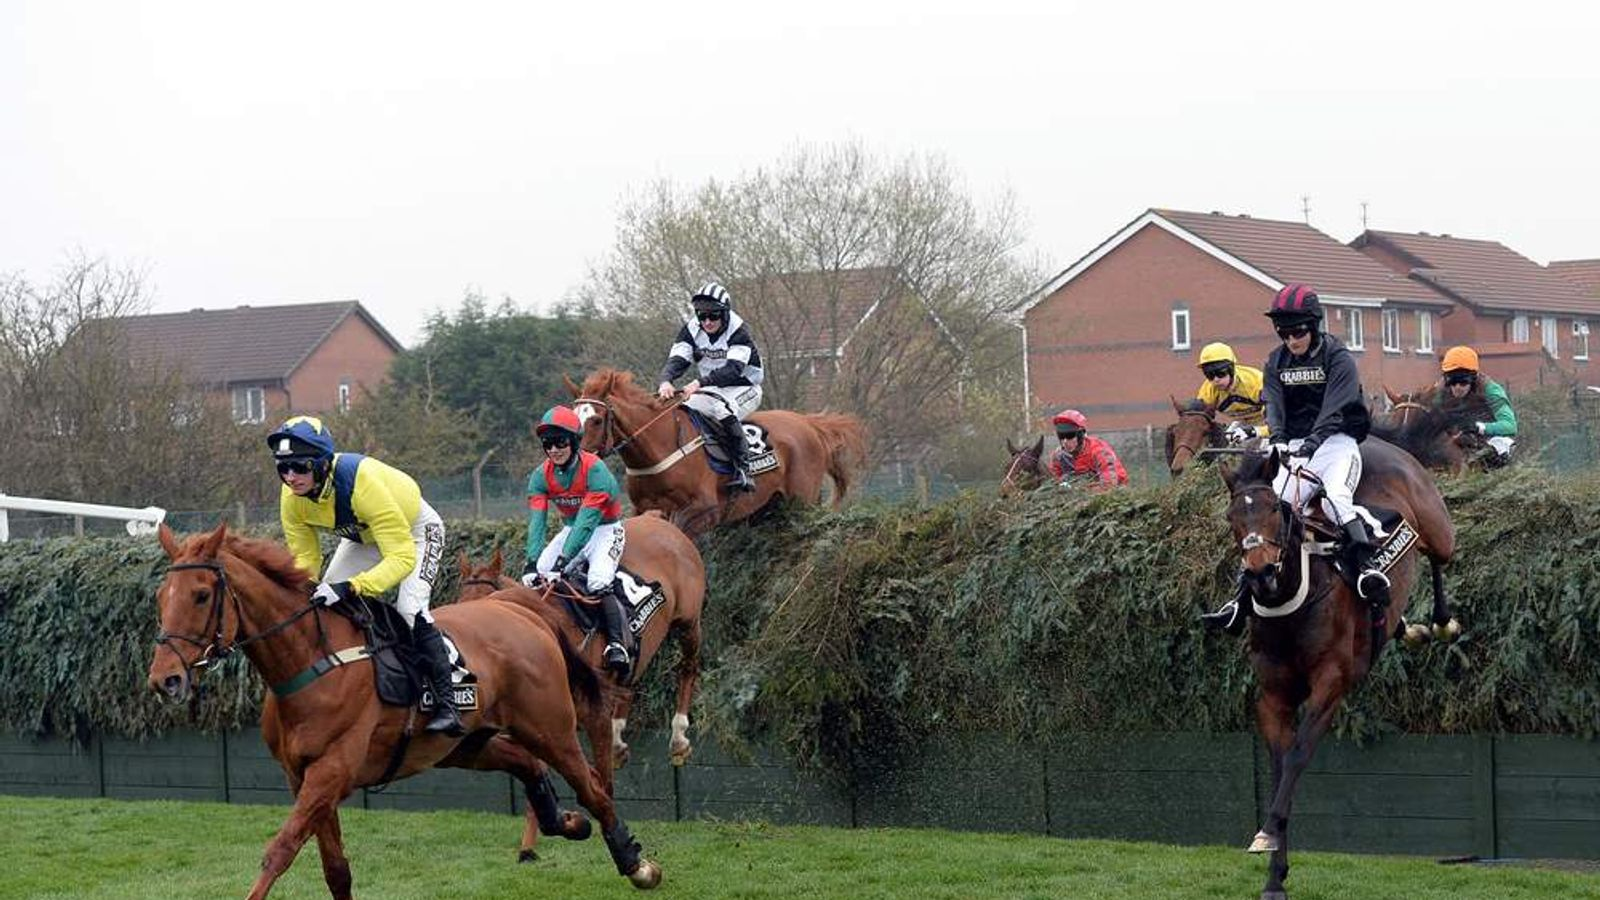 Horse Racing - The Crabbie's Grand National 2014 - Grand Opening Day - Aintree Racecourse